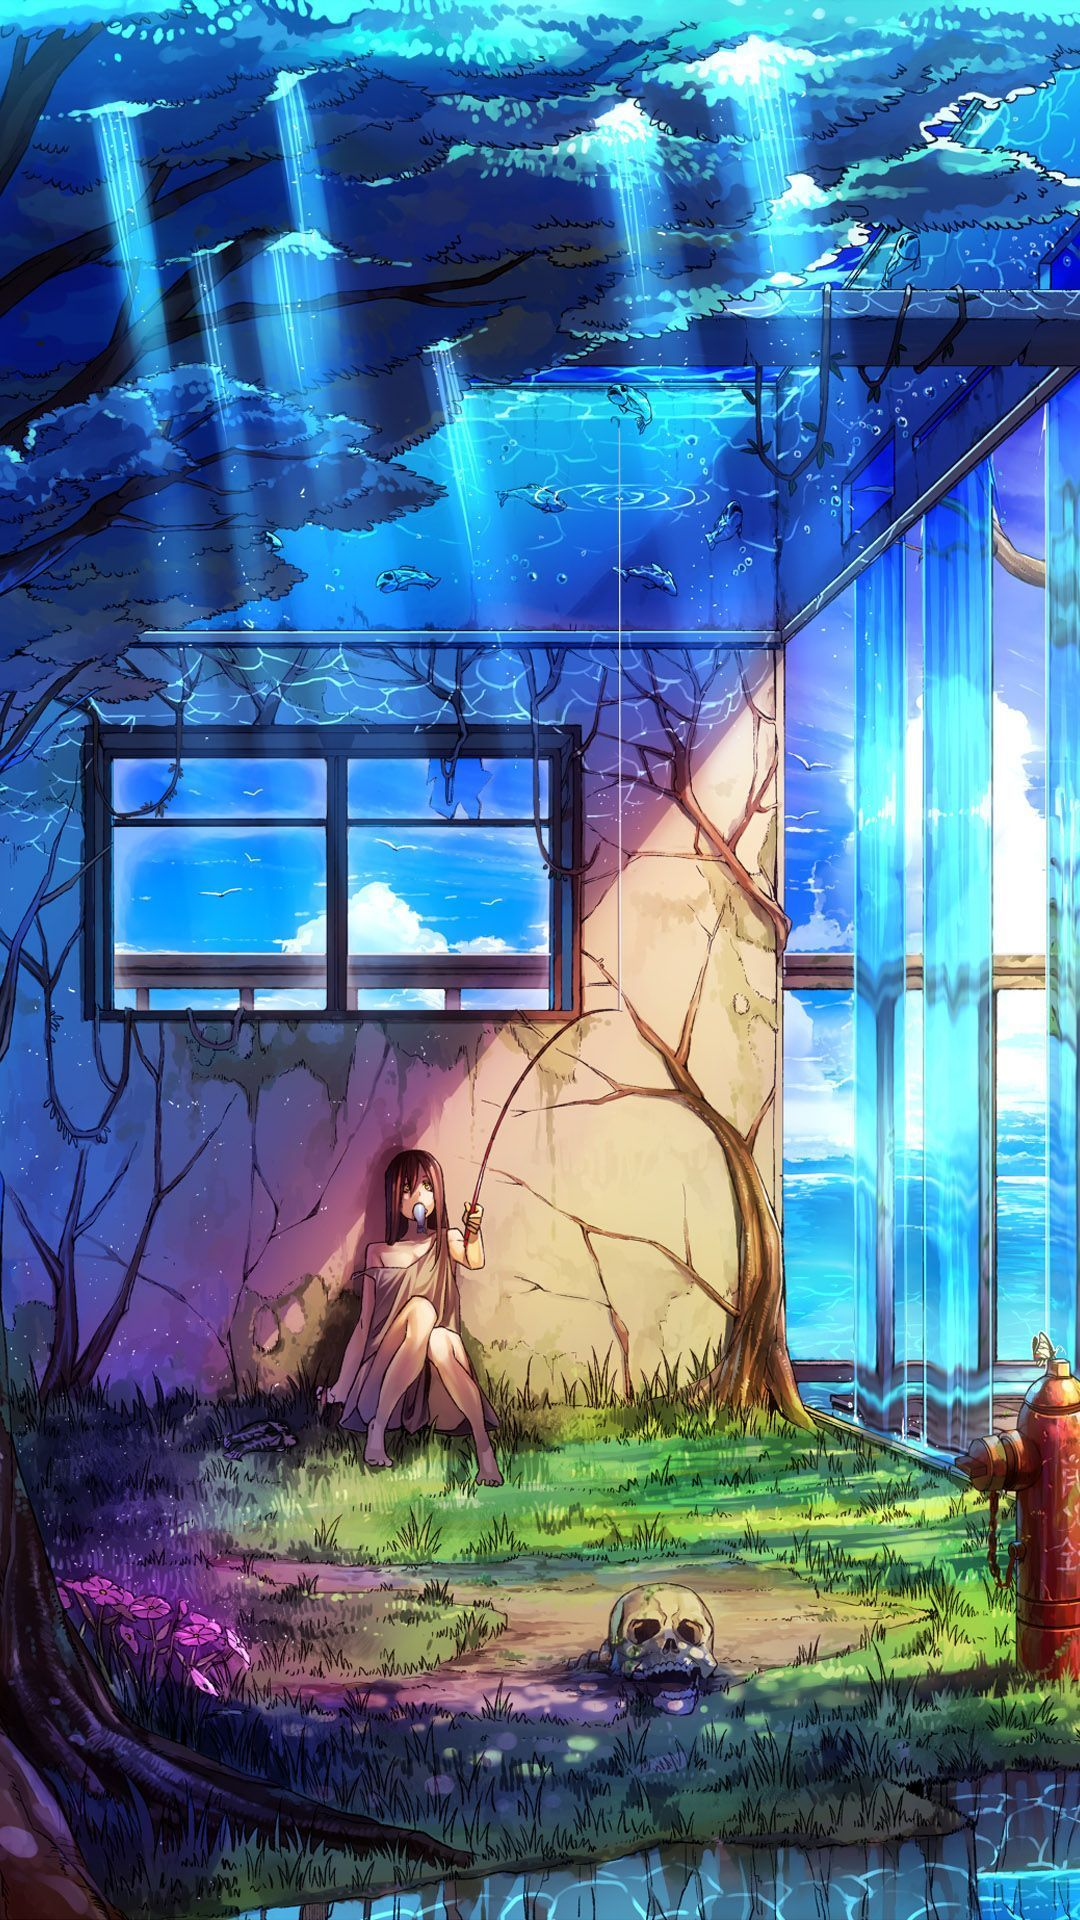 Upside Down Fishing Anime Best Htc One Wallpapers Free And Easy To Download Anime Scenery Anime Artwork Scenery